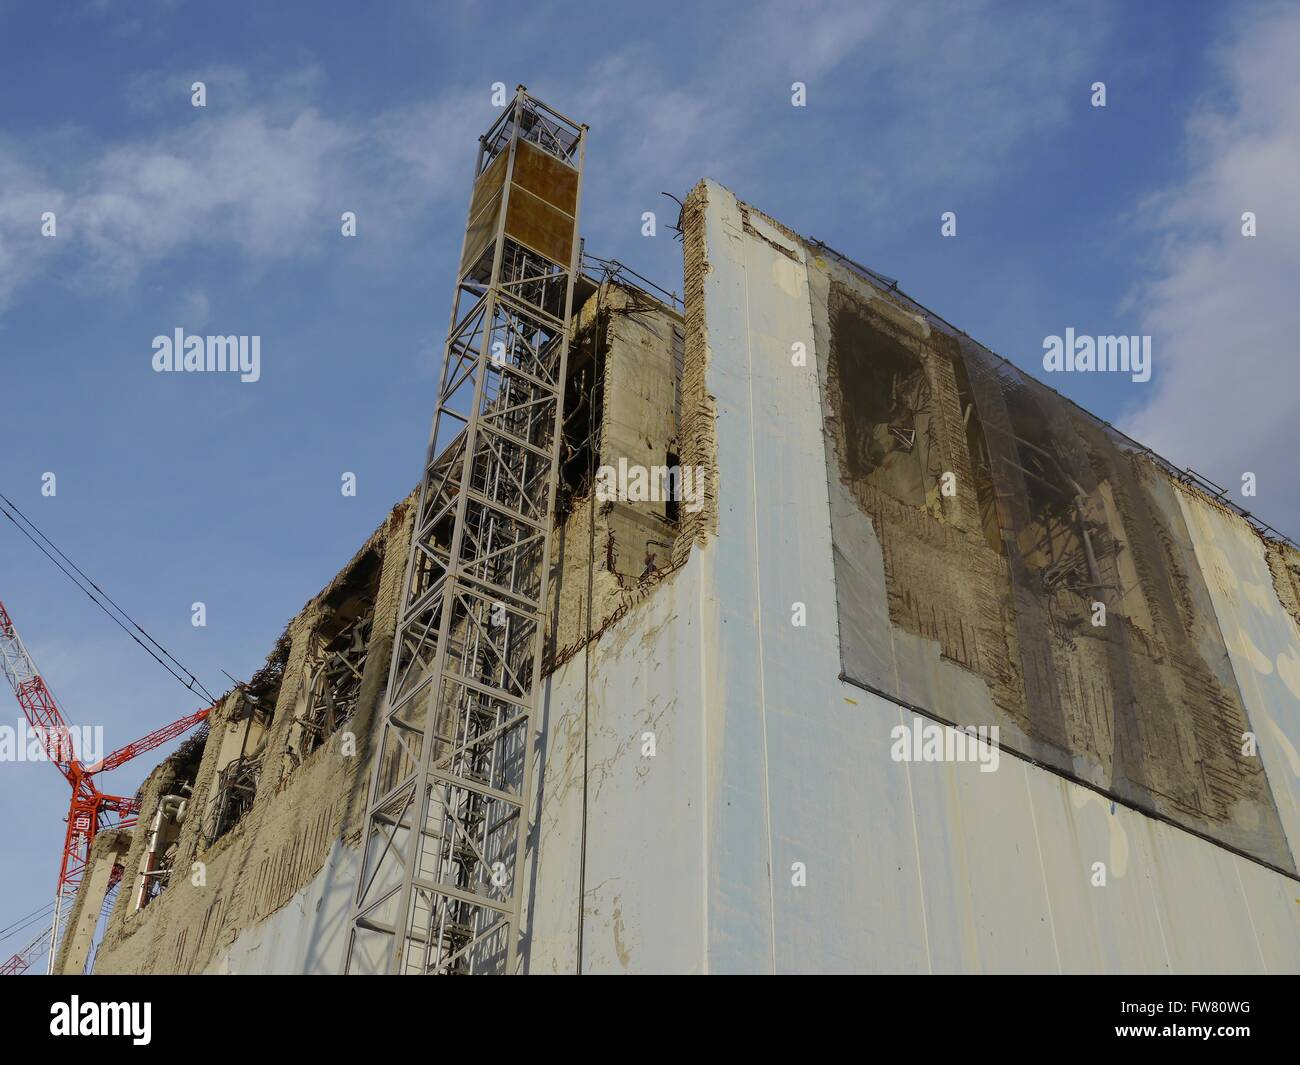 The remains of Unit 4 upper levels at the Fukushima Daiichi Nuclear Power Station December 18, 2012 in Okuma, Japan. - Stock Image